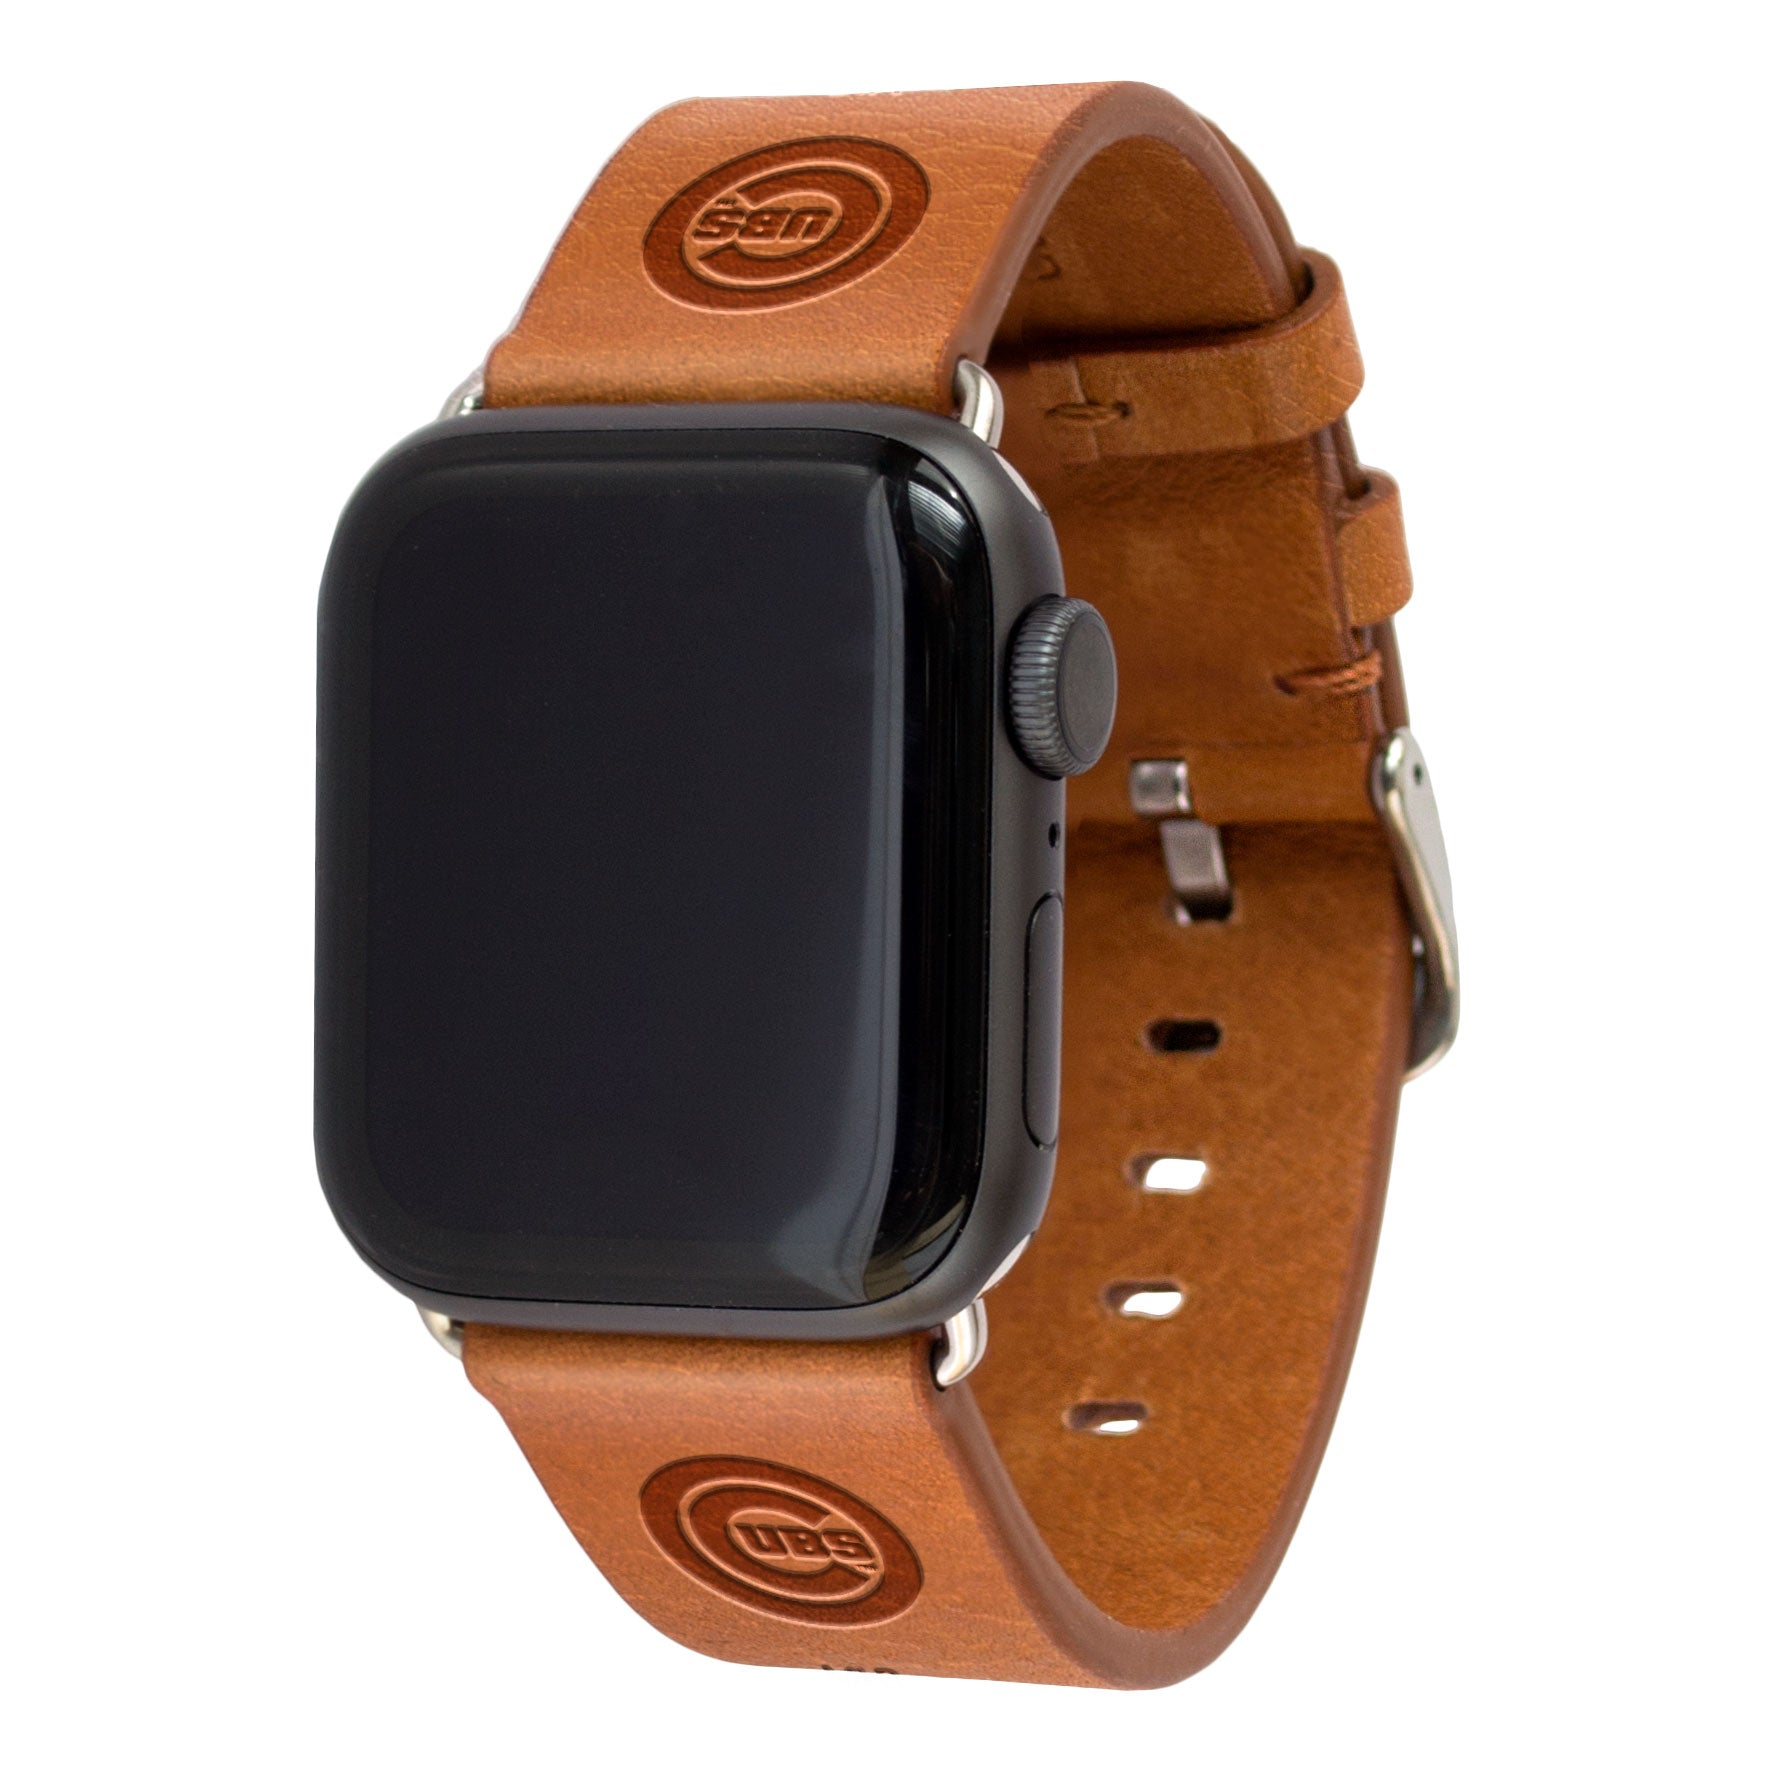 Chicago Cubs Leather Band Compatible with Apple Watch